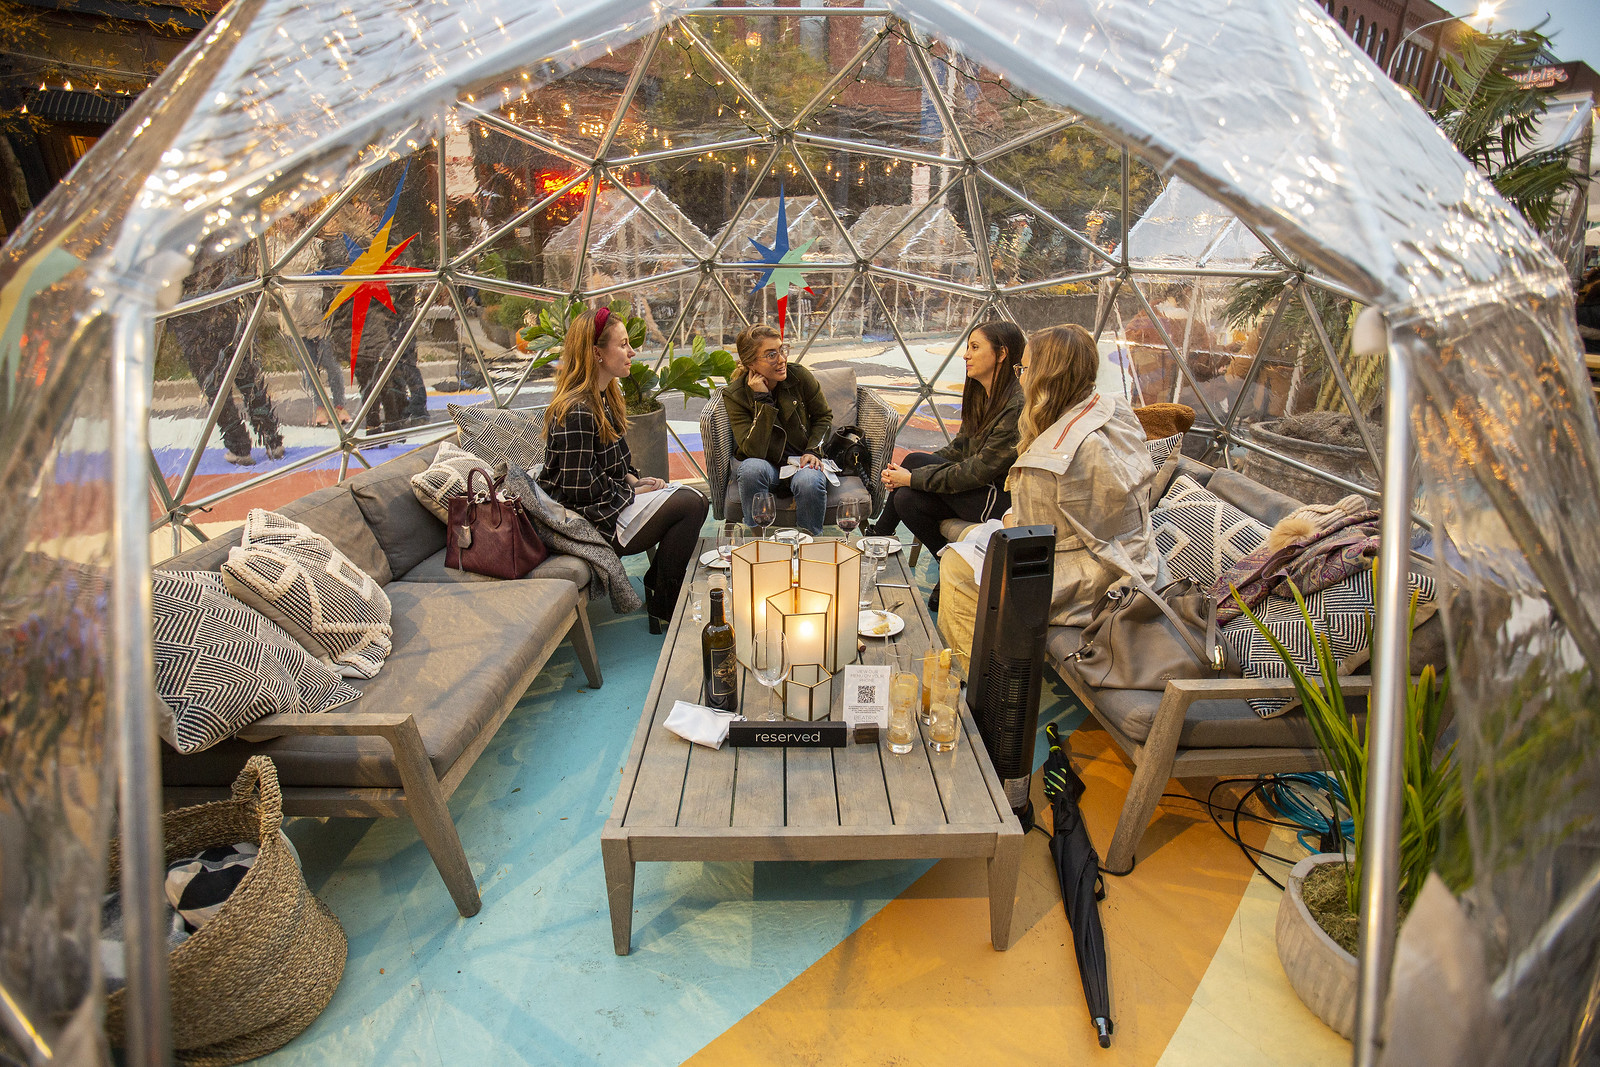 A plastic dome with people eating inside.